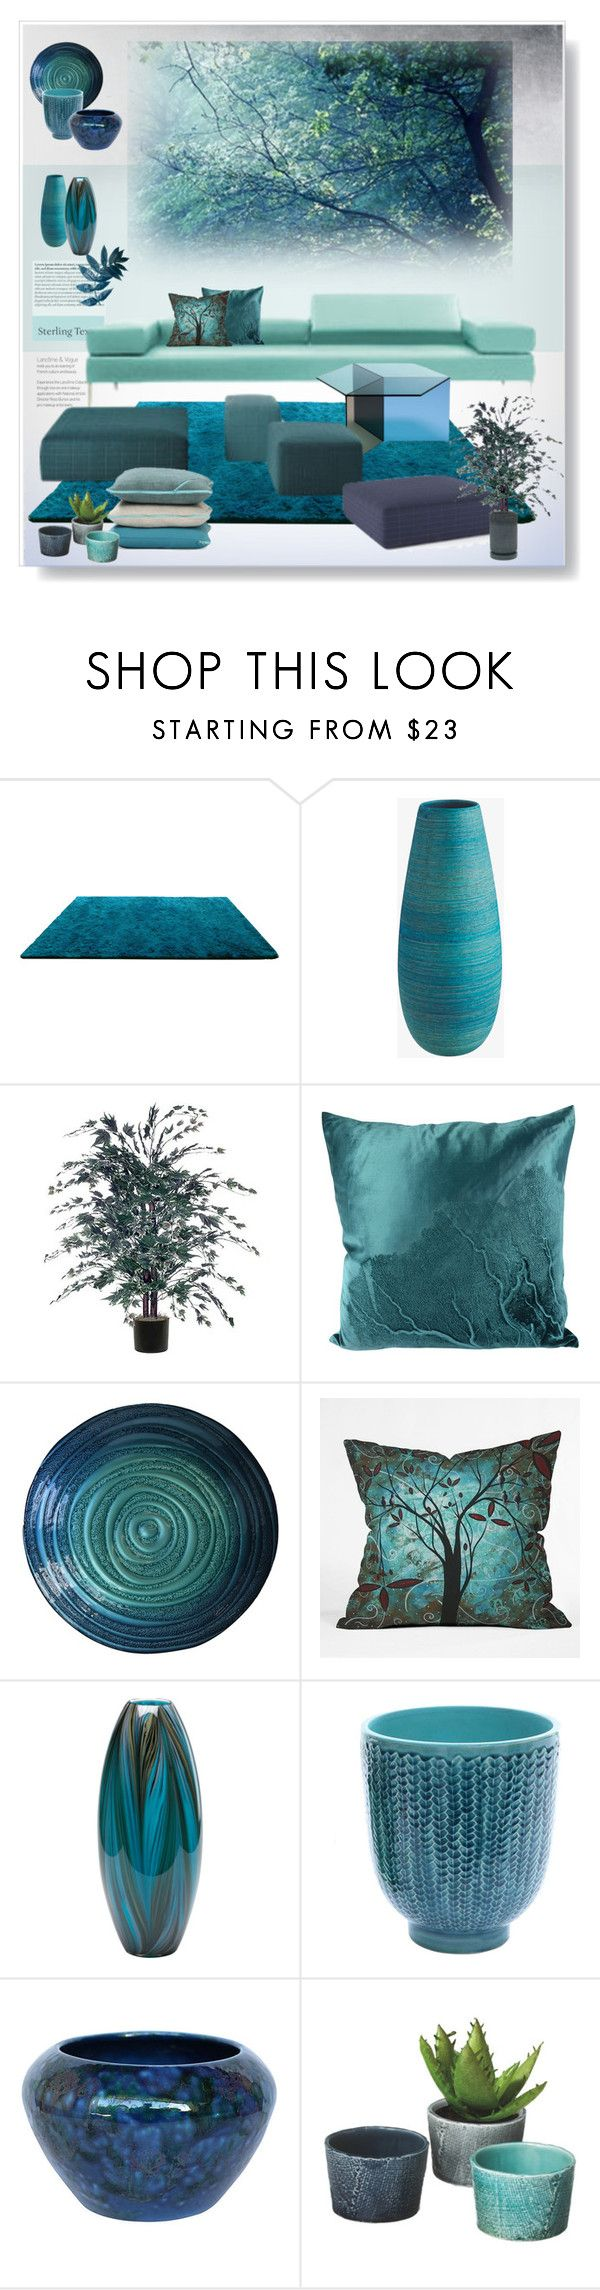 Cyan Design unique decorative objects and accessories for vibrant ...